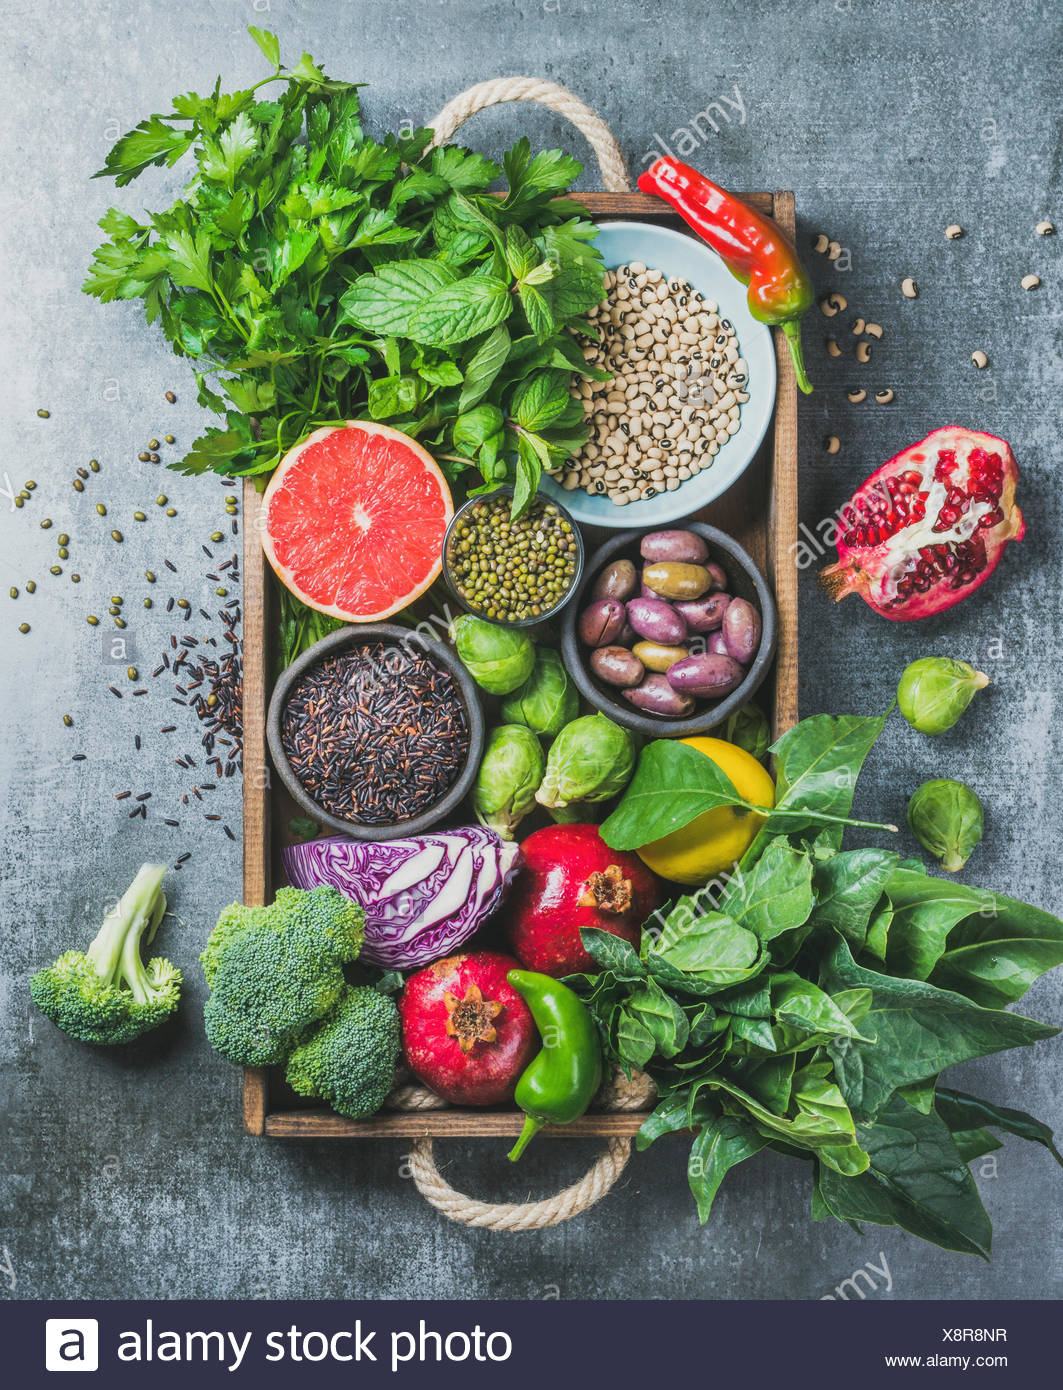 Vegetables, fruit, seeds, cereals, beans, spices, superfoods, herbs, condiment in wooden box for vegan, gluten free, allergy-friendly, clean eating or - Stock Image